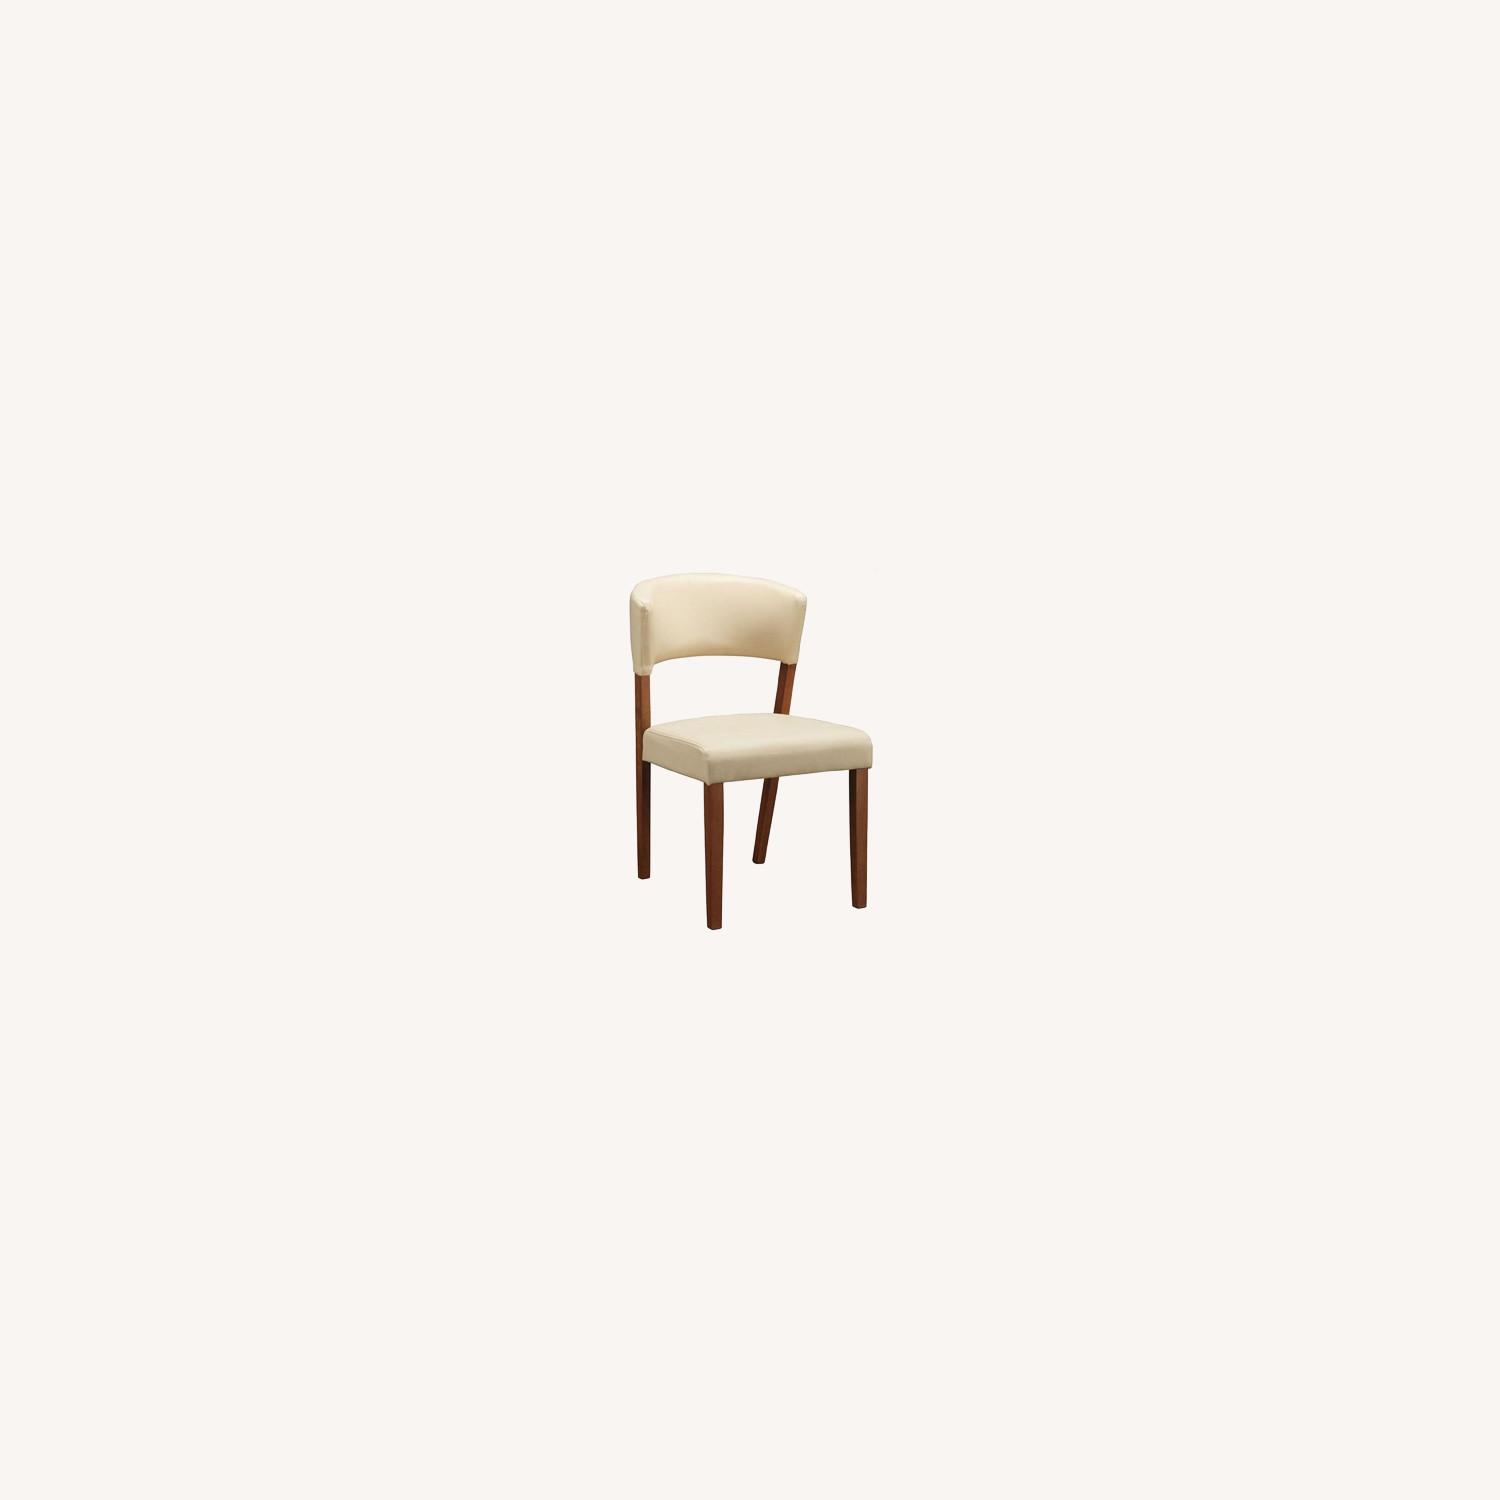 Retro Side Chair In Nutmeg & Cream Leatherette - image-6